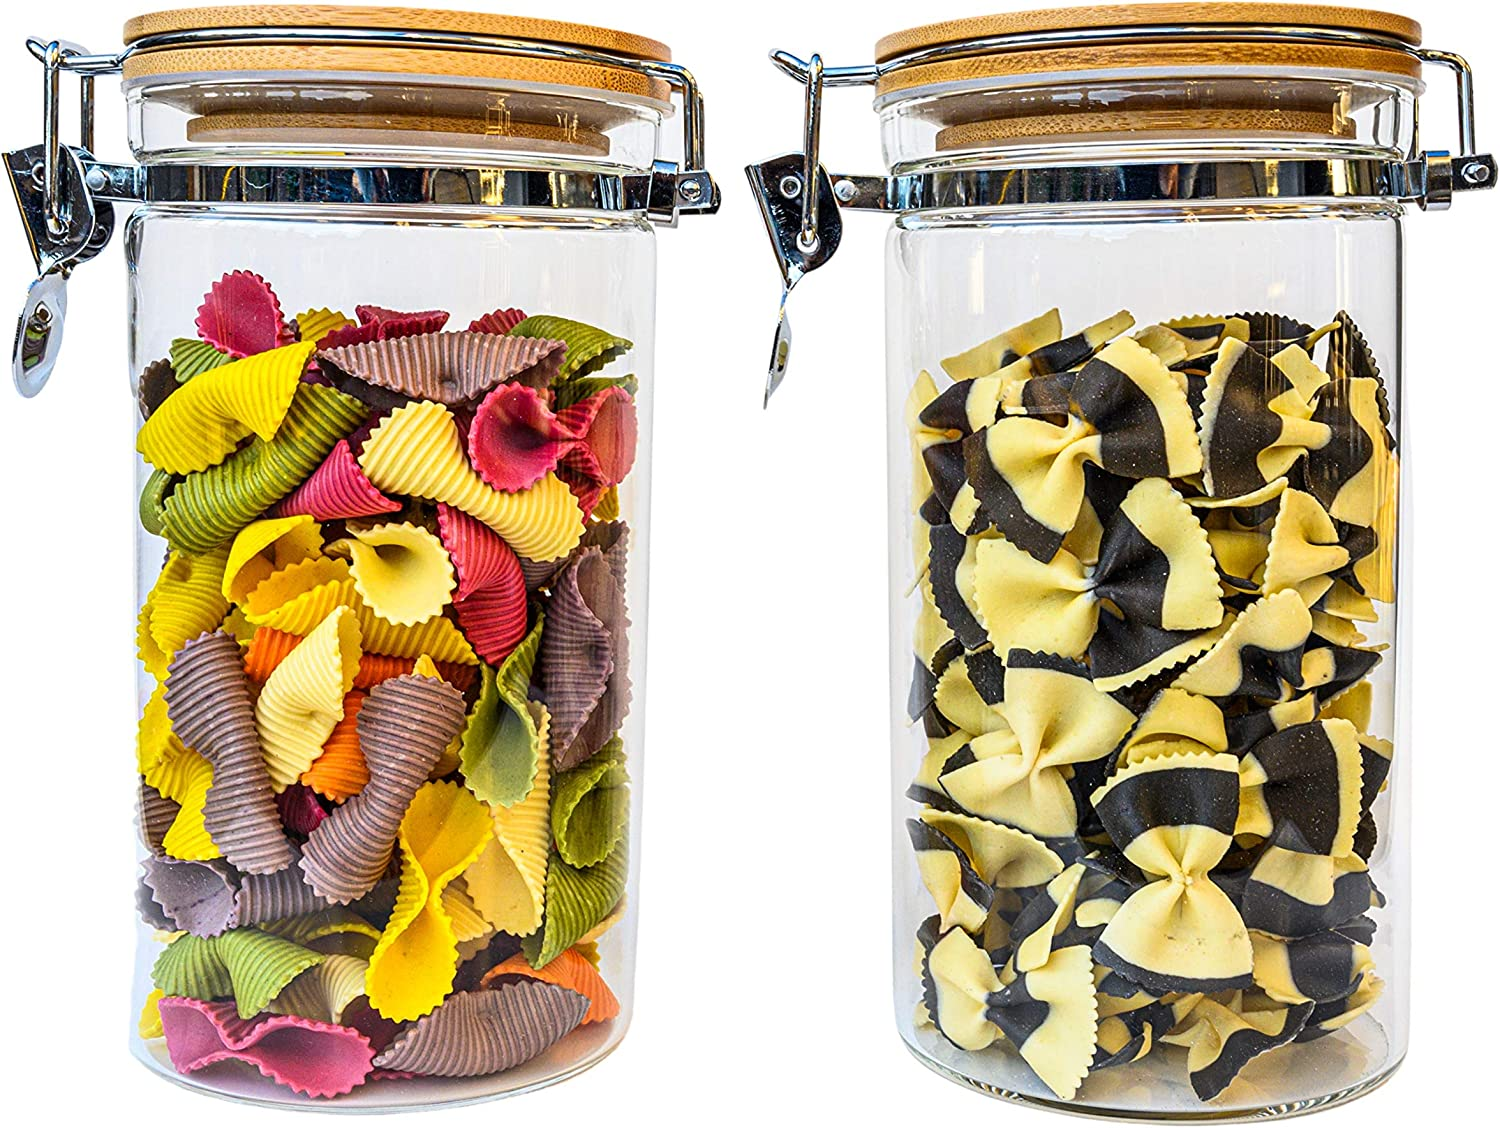 Airtight Glass Canister Set of 2 with Hinged Lids - Large Kitchen Storage Containers for Flour, Coffee, Sugar, Cereal, Pasta, Spice, Candy, Tea, Spaghetti - Glass Jars with Bamboo Lids - 2 pcs Set